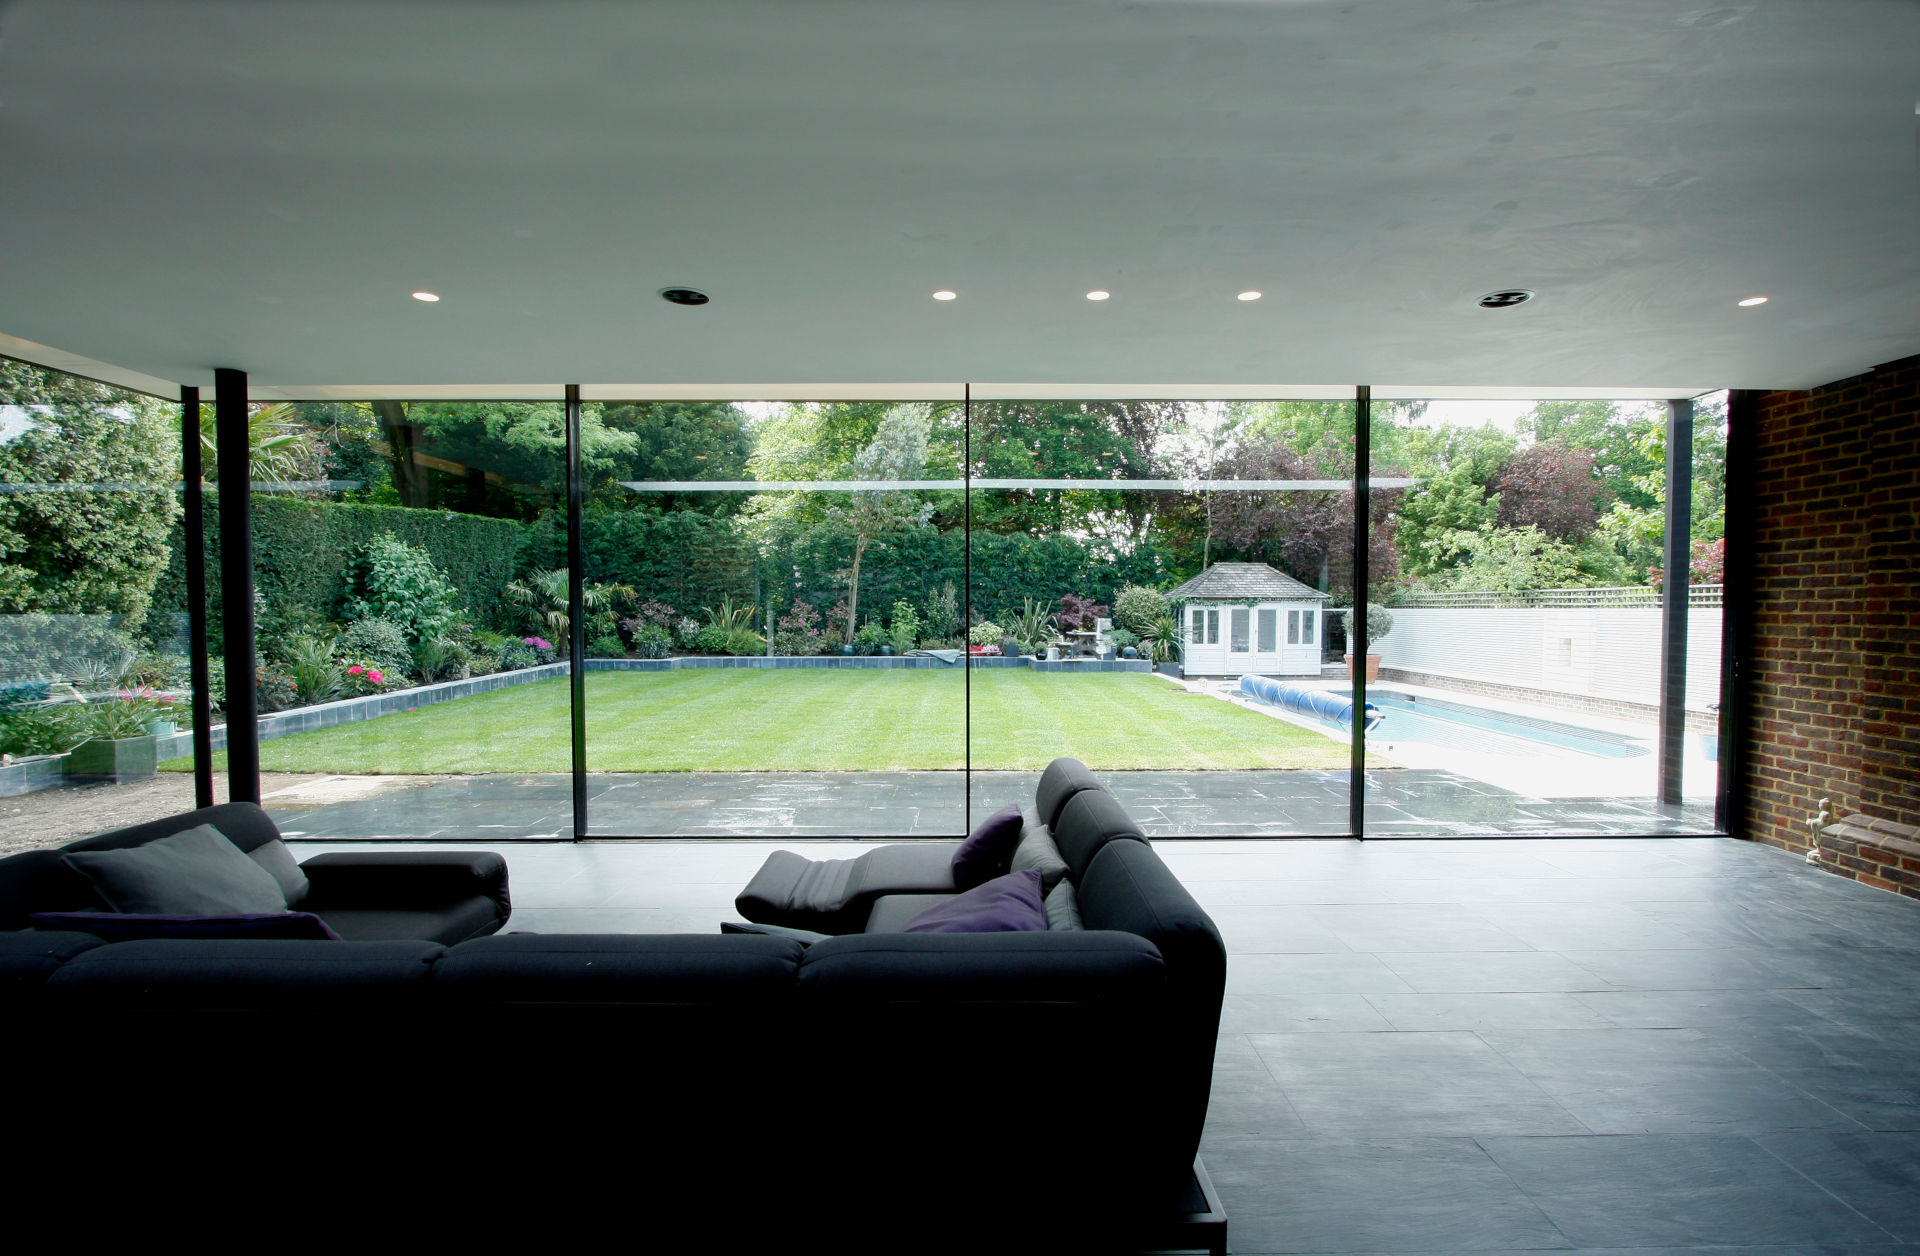 totteridge-lane-ultra-thin-framed-sliding-glass-doors